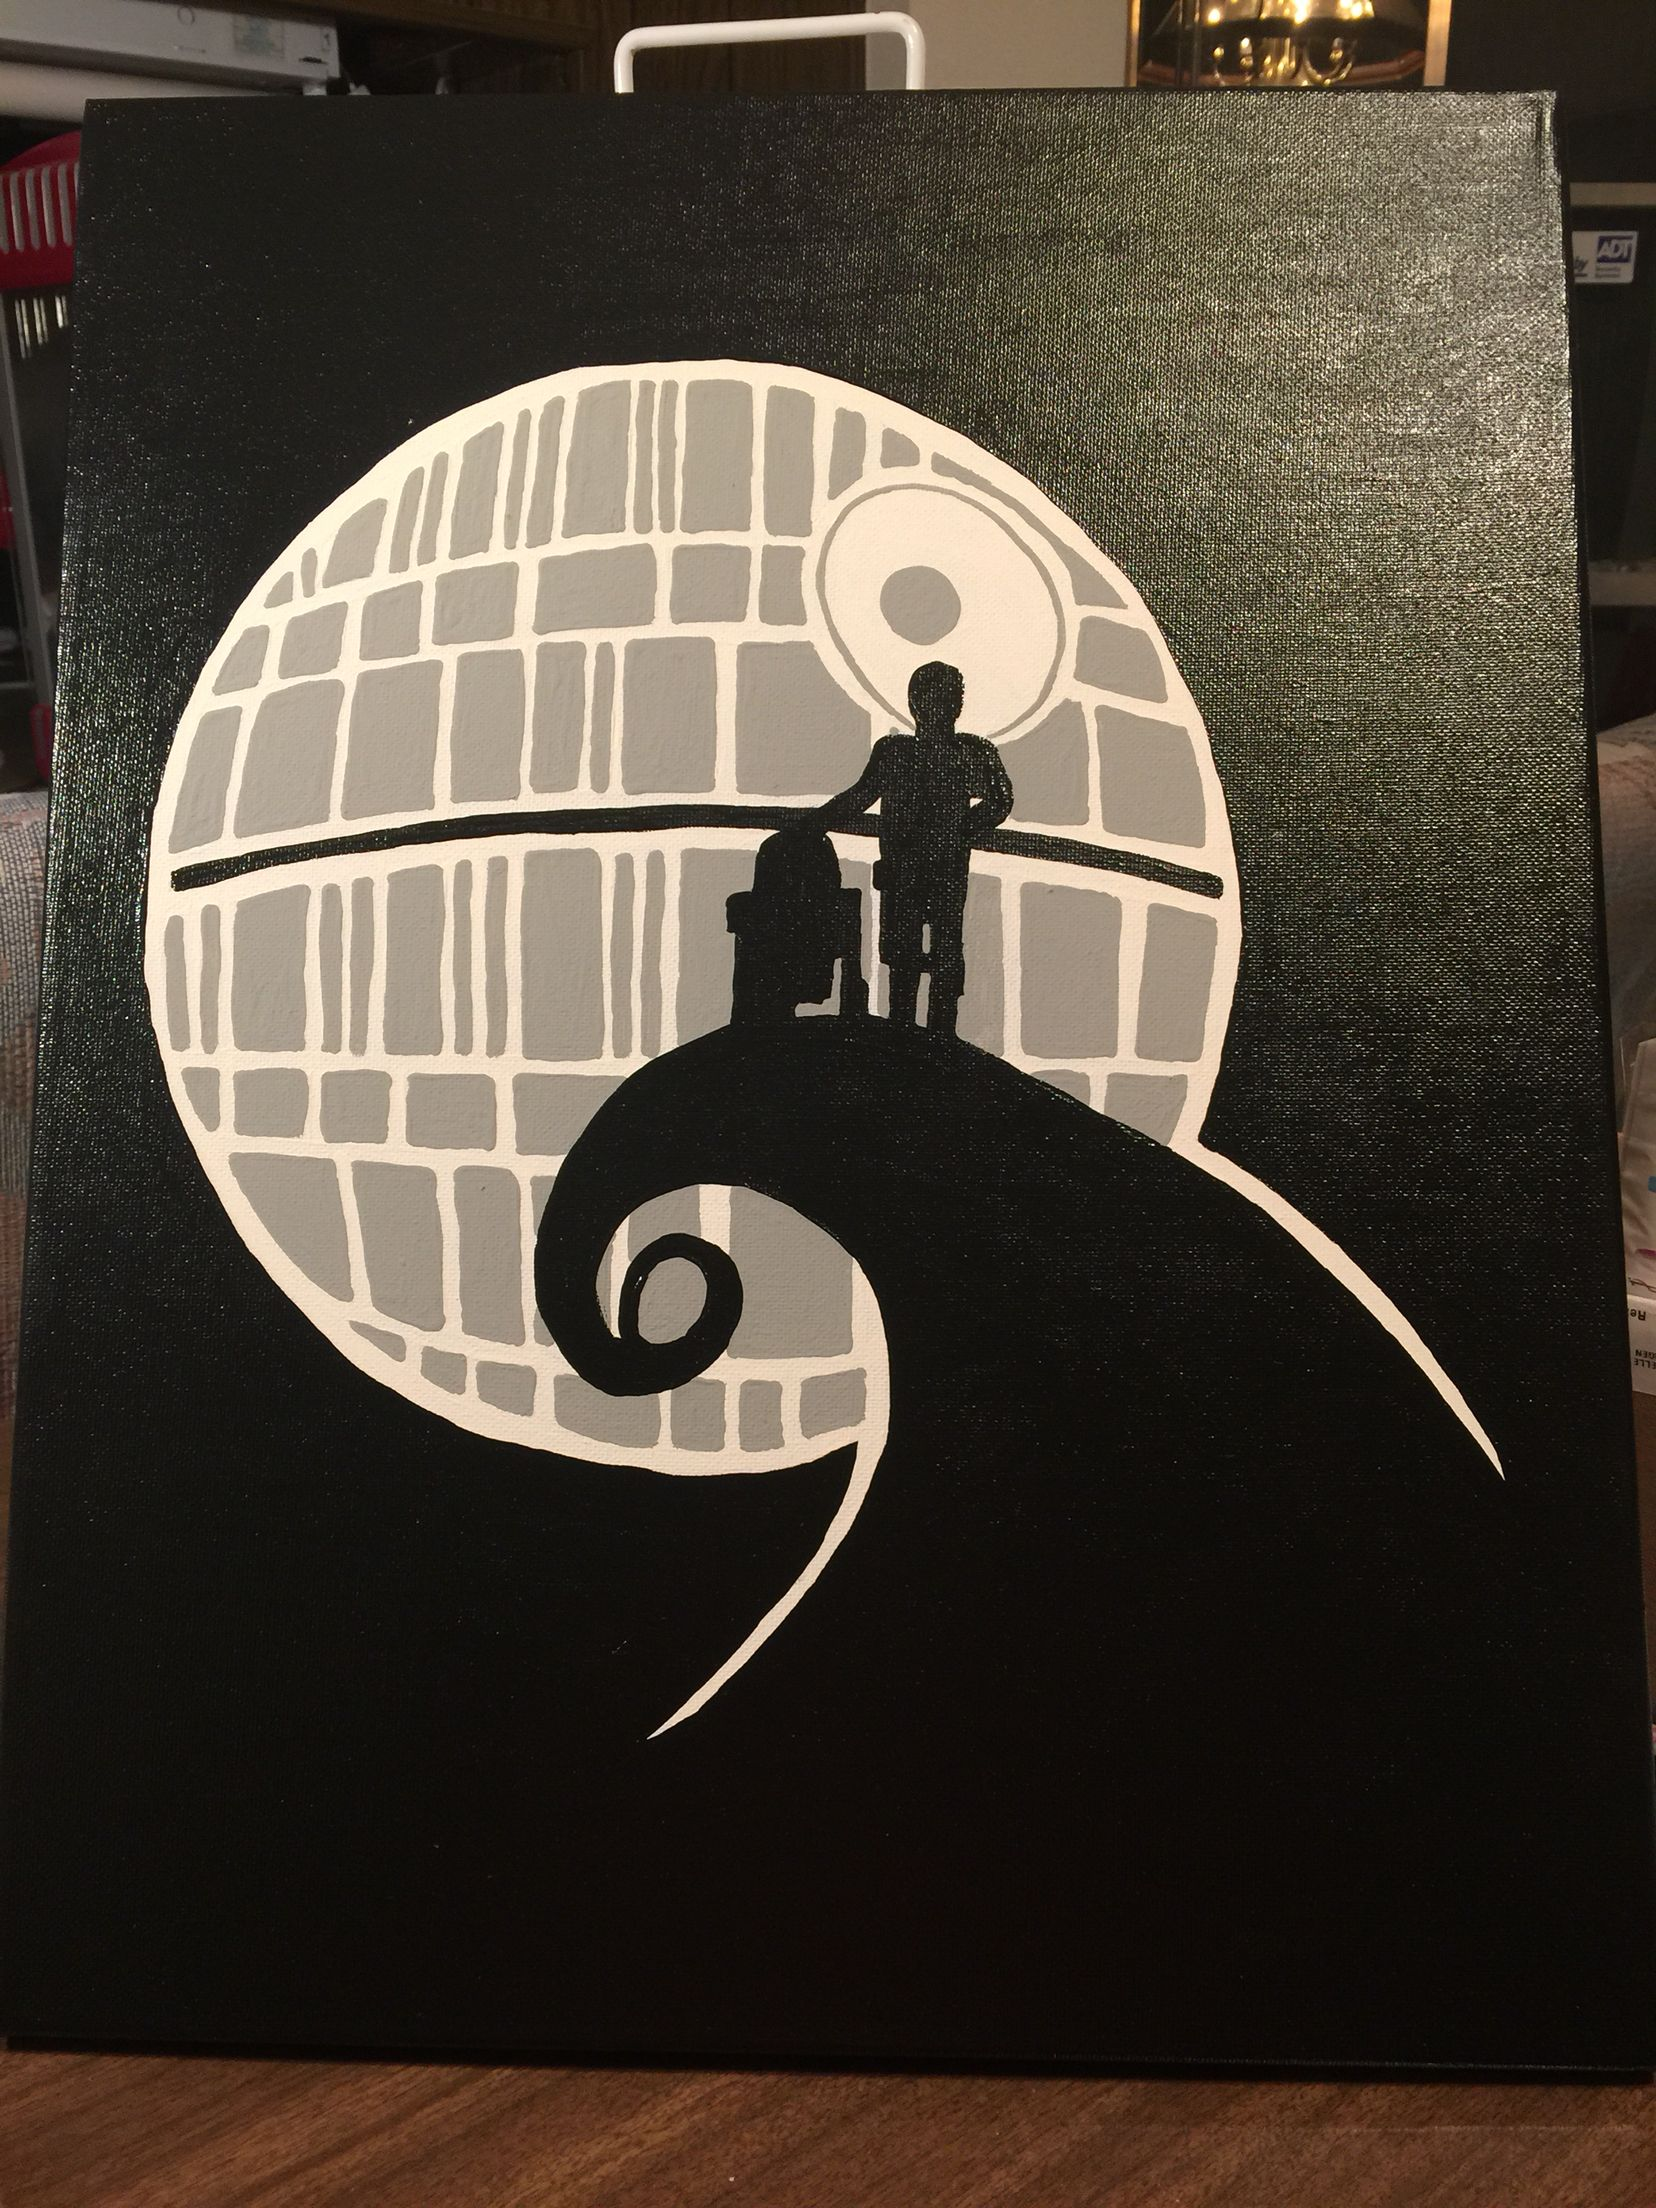 Star wars nightmare i painted on 16x20 canvas gift ideas in 2019